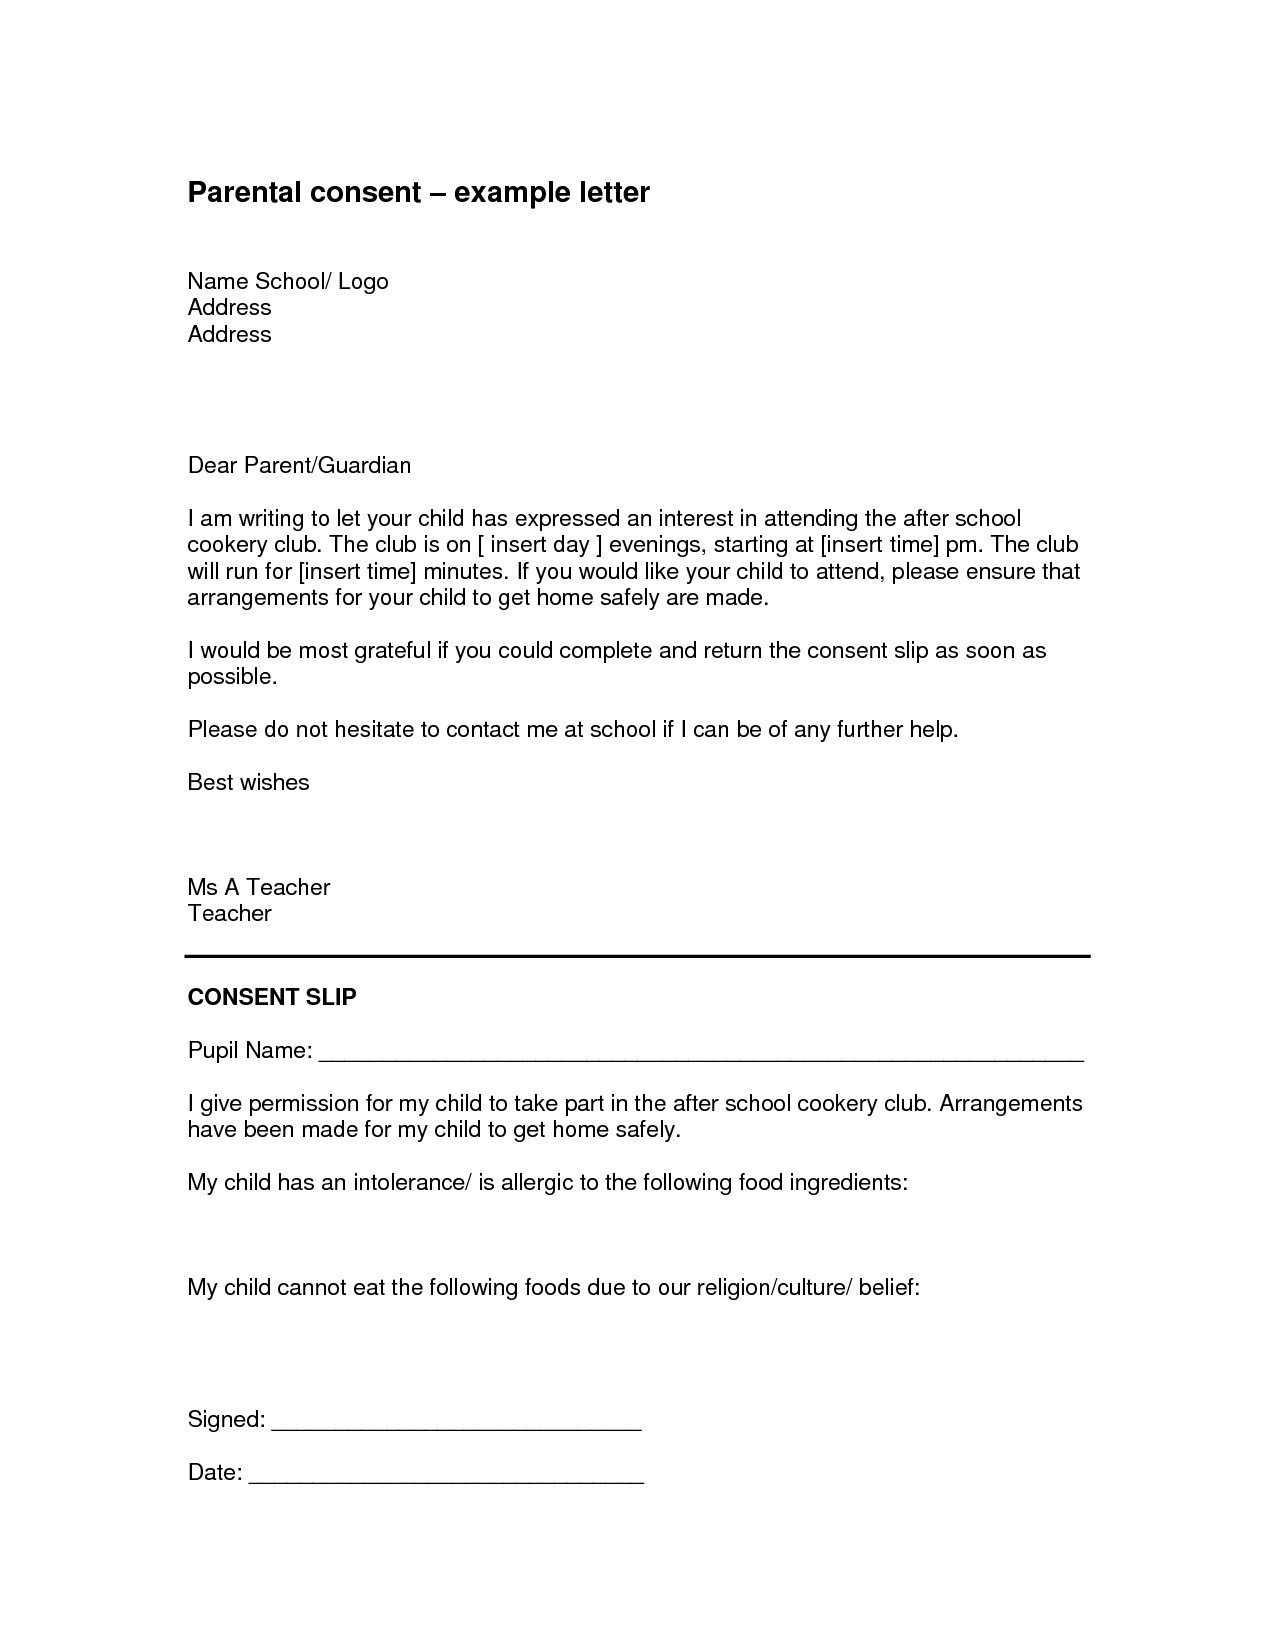 Parental Consent Letter Template Samples Letter Template Collection